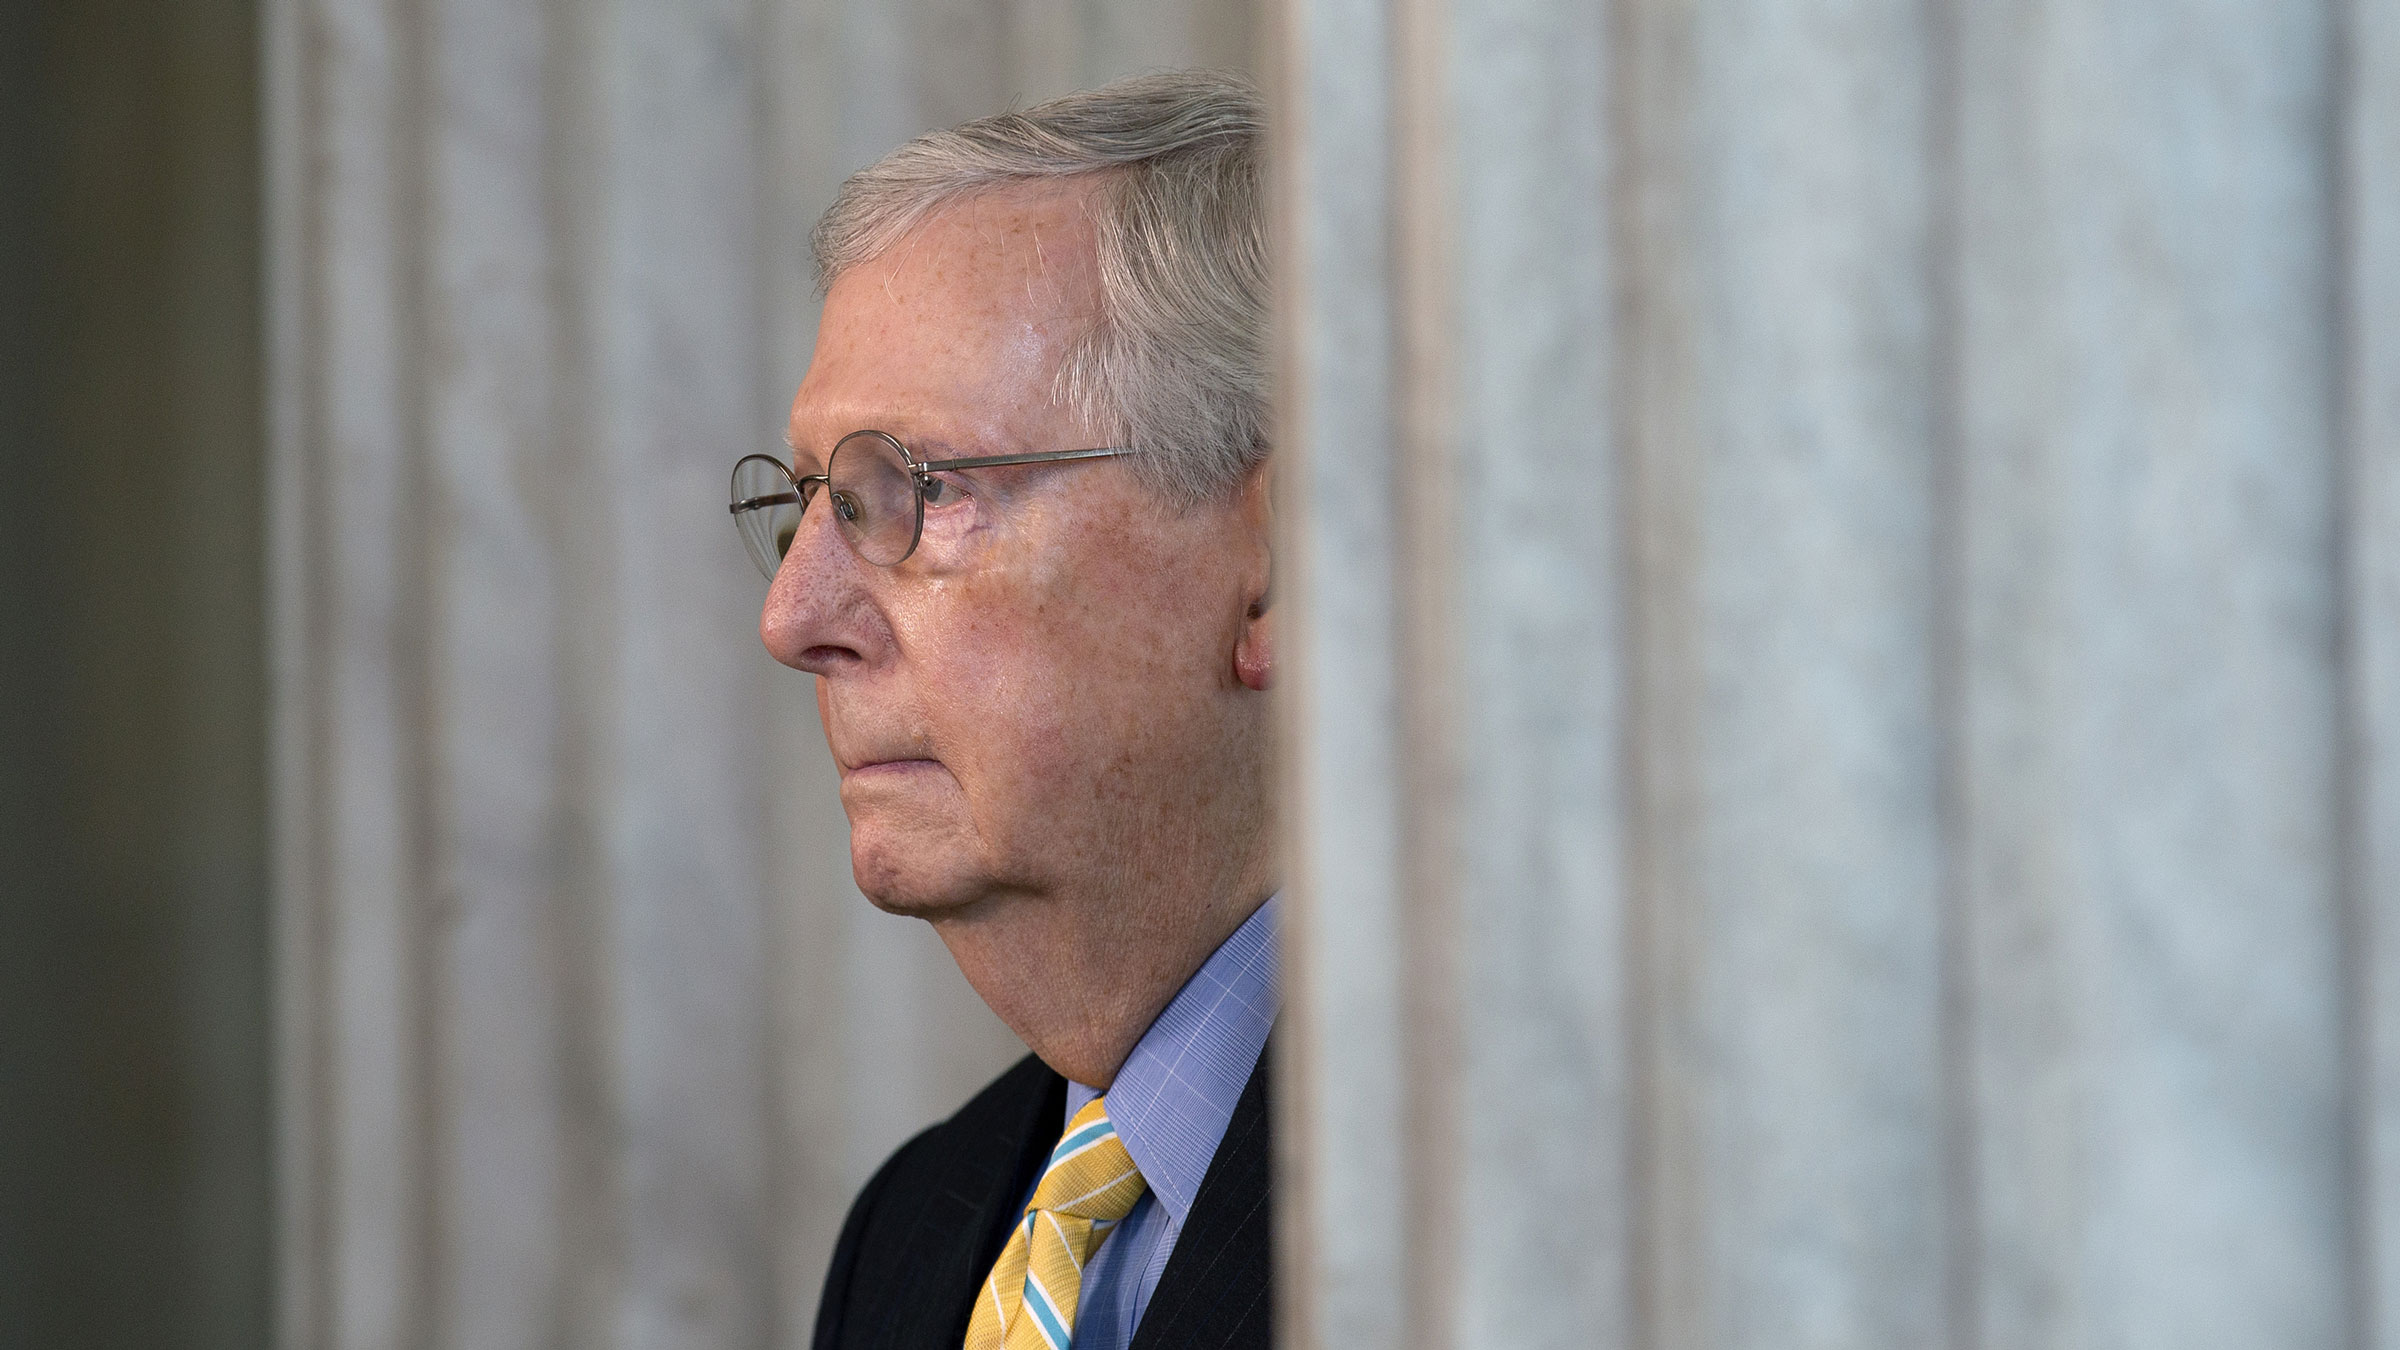 Senate Majority Leader Mitch McConnell pauses during a television interview on Tuesday.